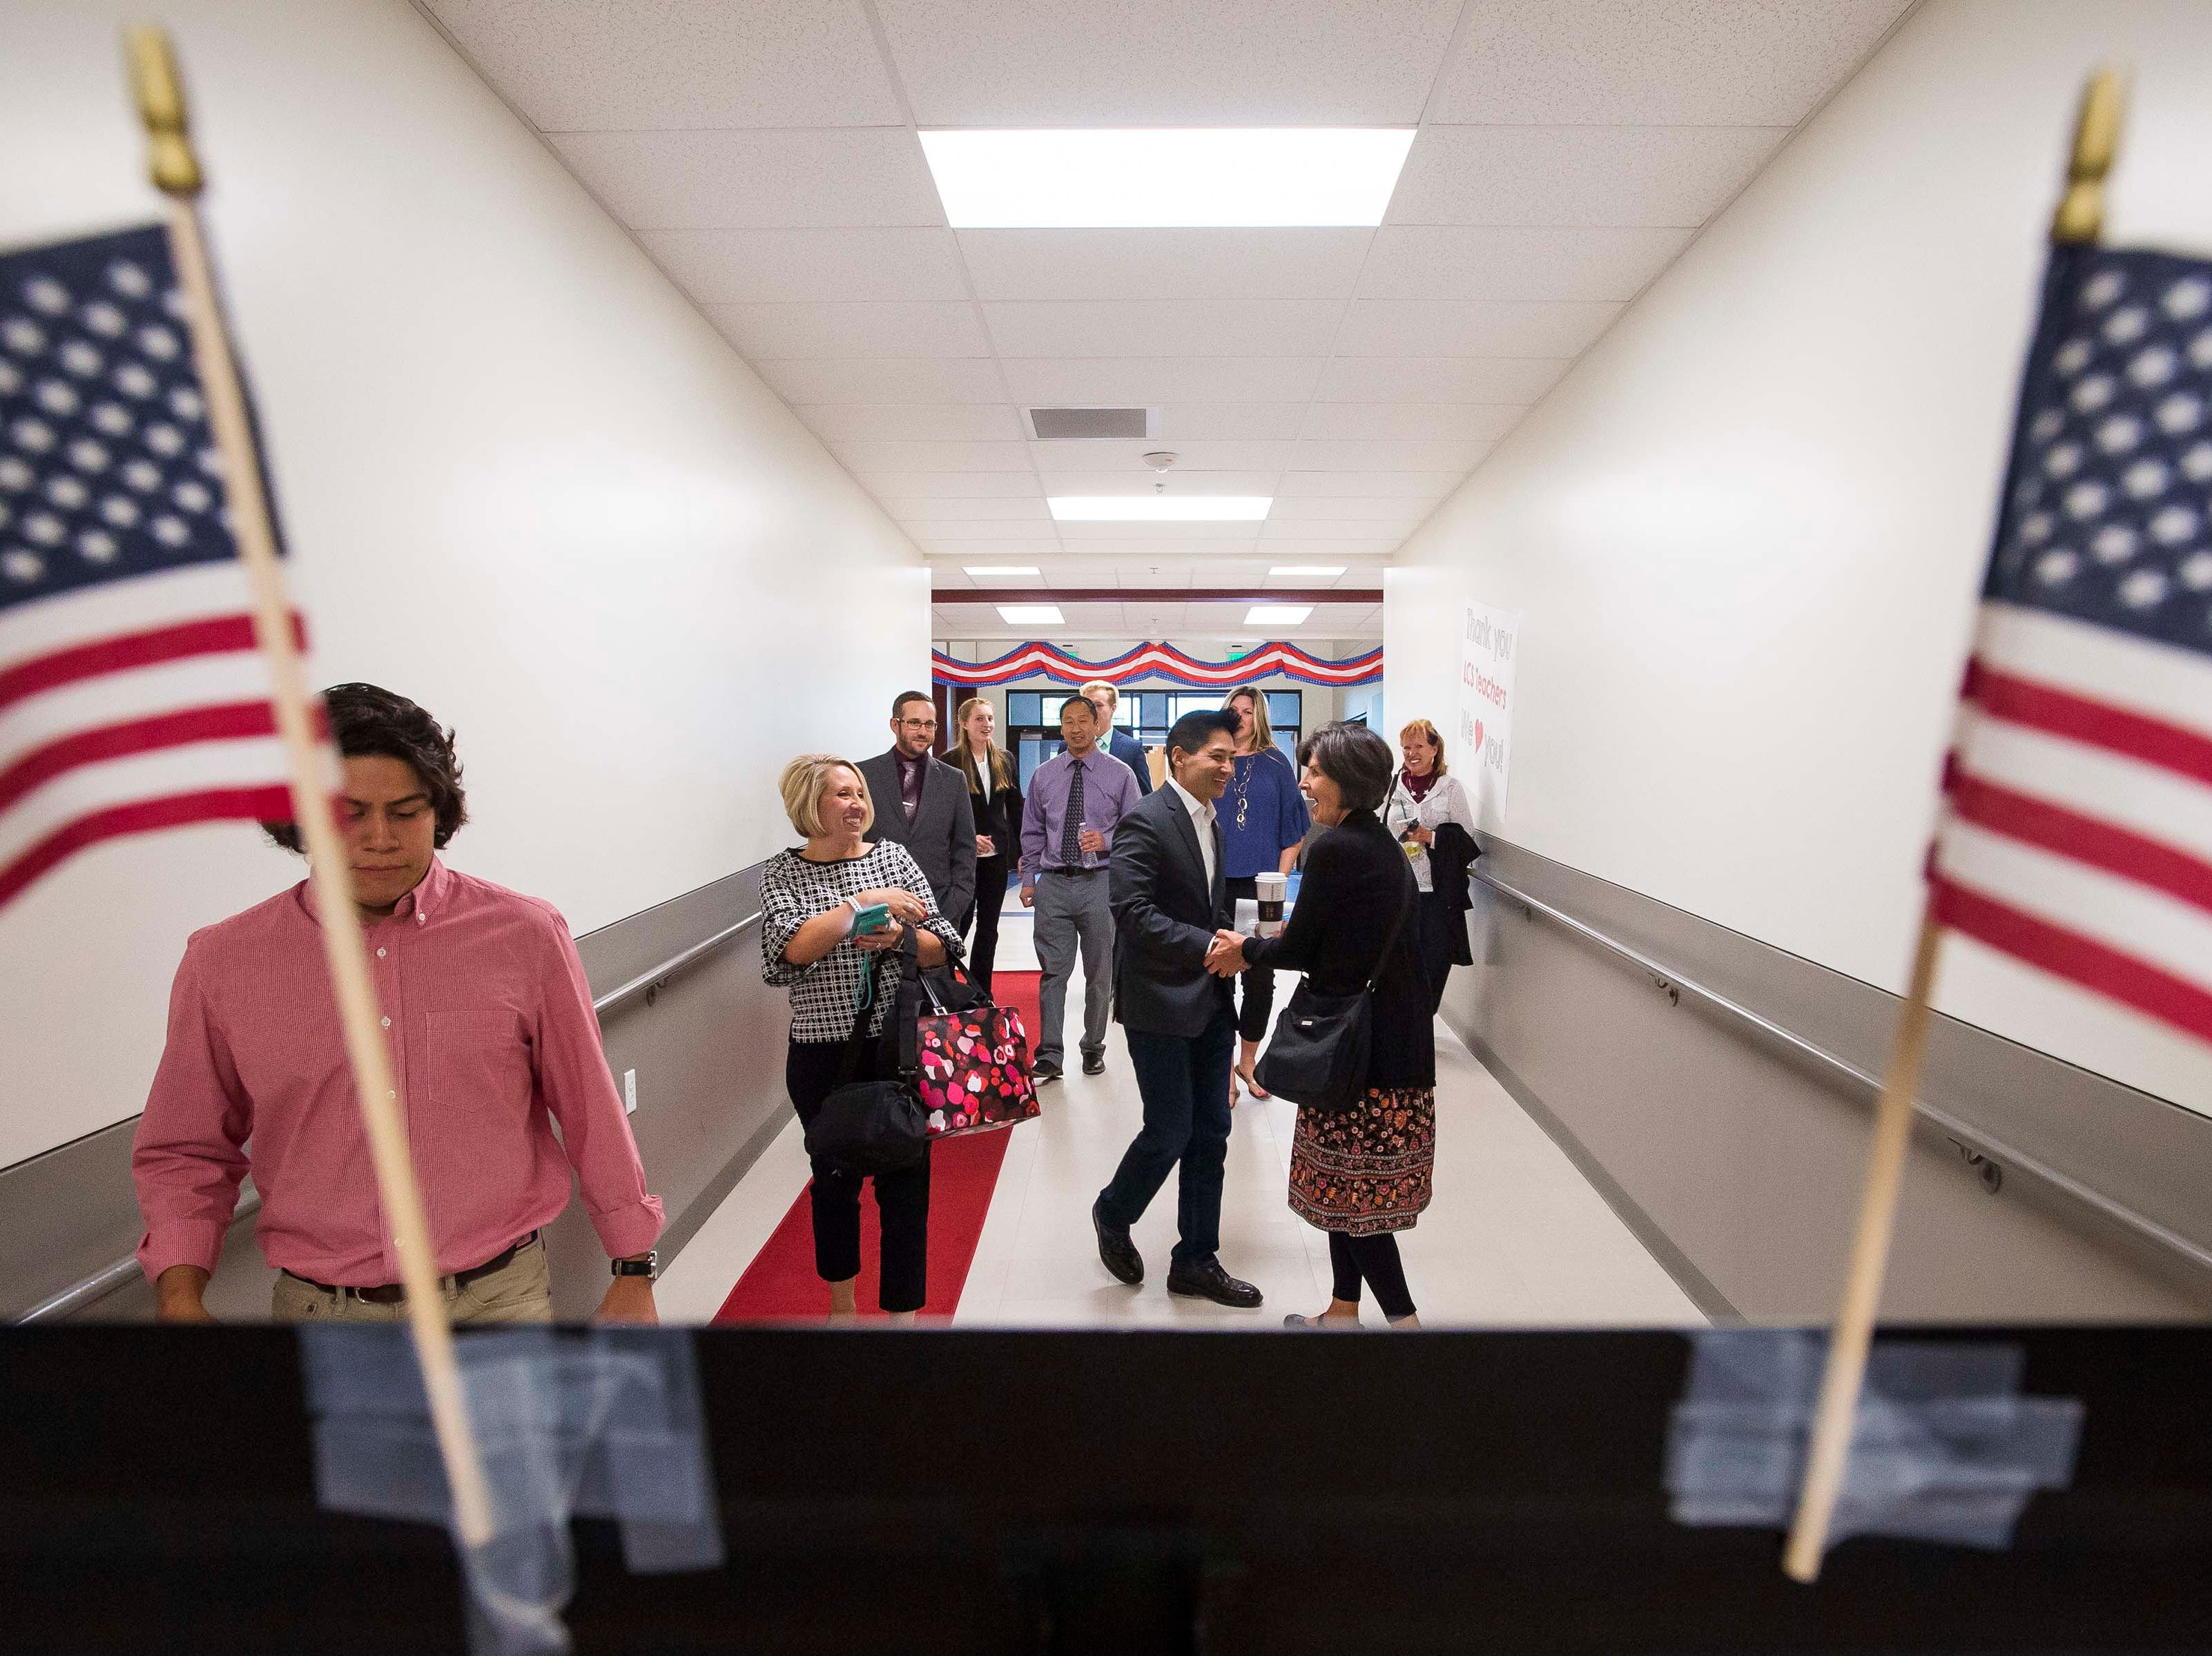 Colorado's 2nd Congressional District Republican nominee Peter Yu shakes hands with an audience member on his way to a debate with Democratic nominee Joe Neguse on Wednesday, Sept. 26, 2018, at the Loveland Classical Schools in Loveland, Colo.